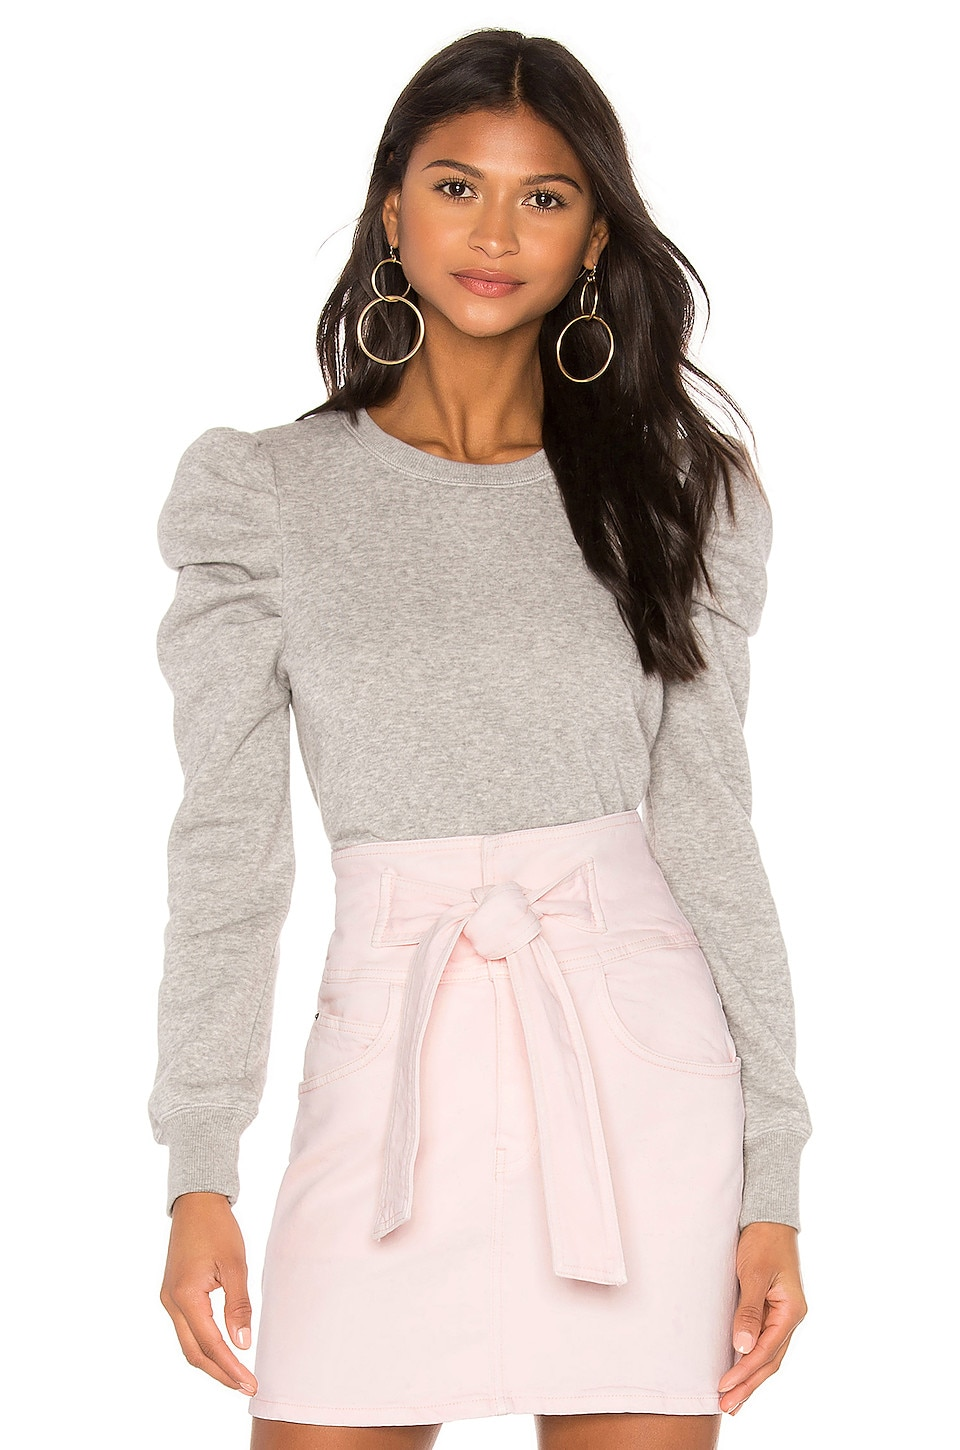 Rebecca Minkoff Janine Sweatshirt in Heather Grey